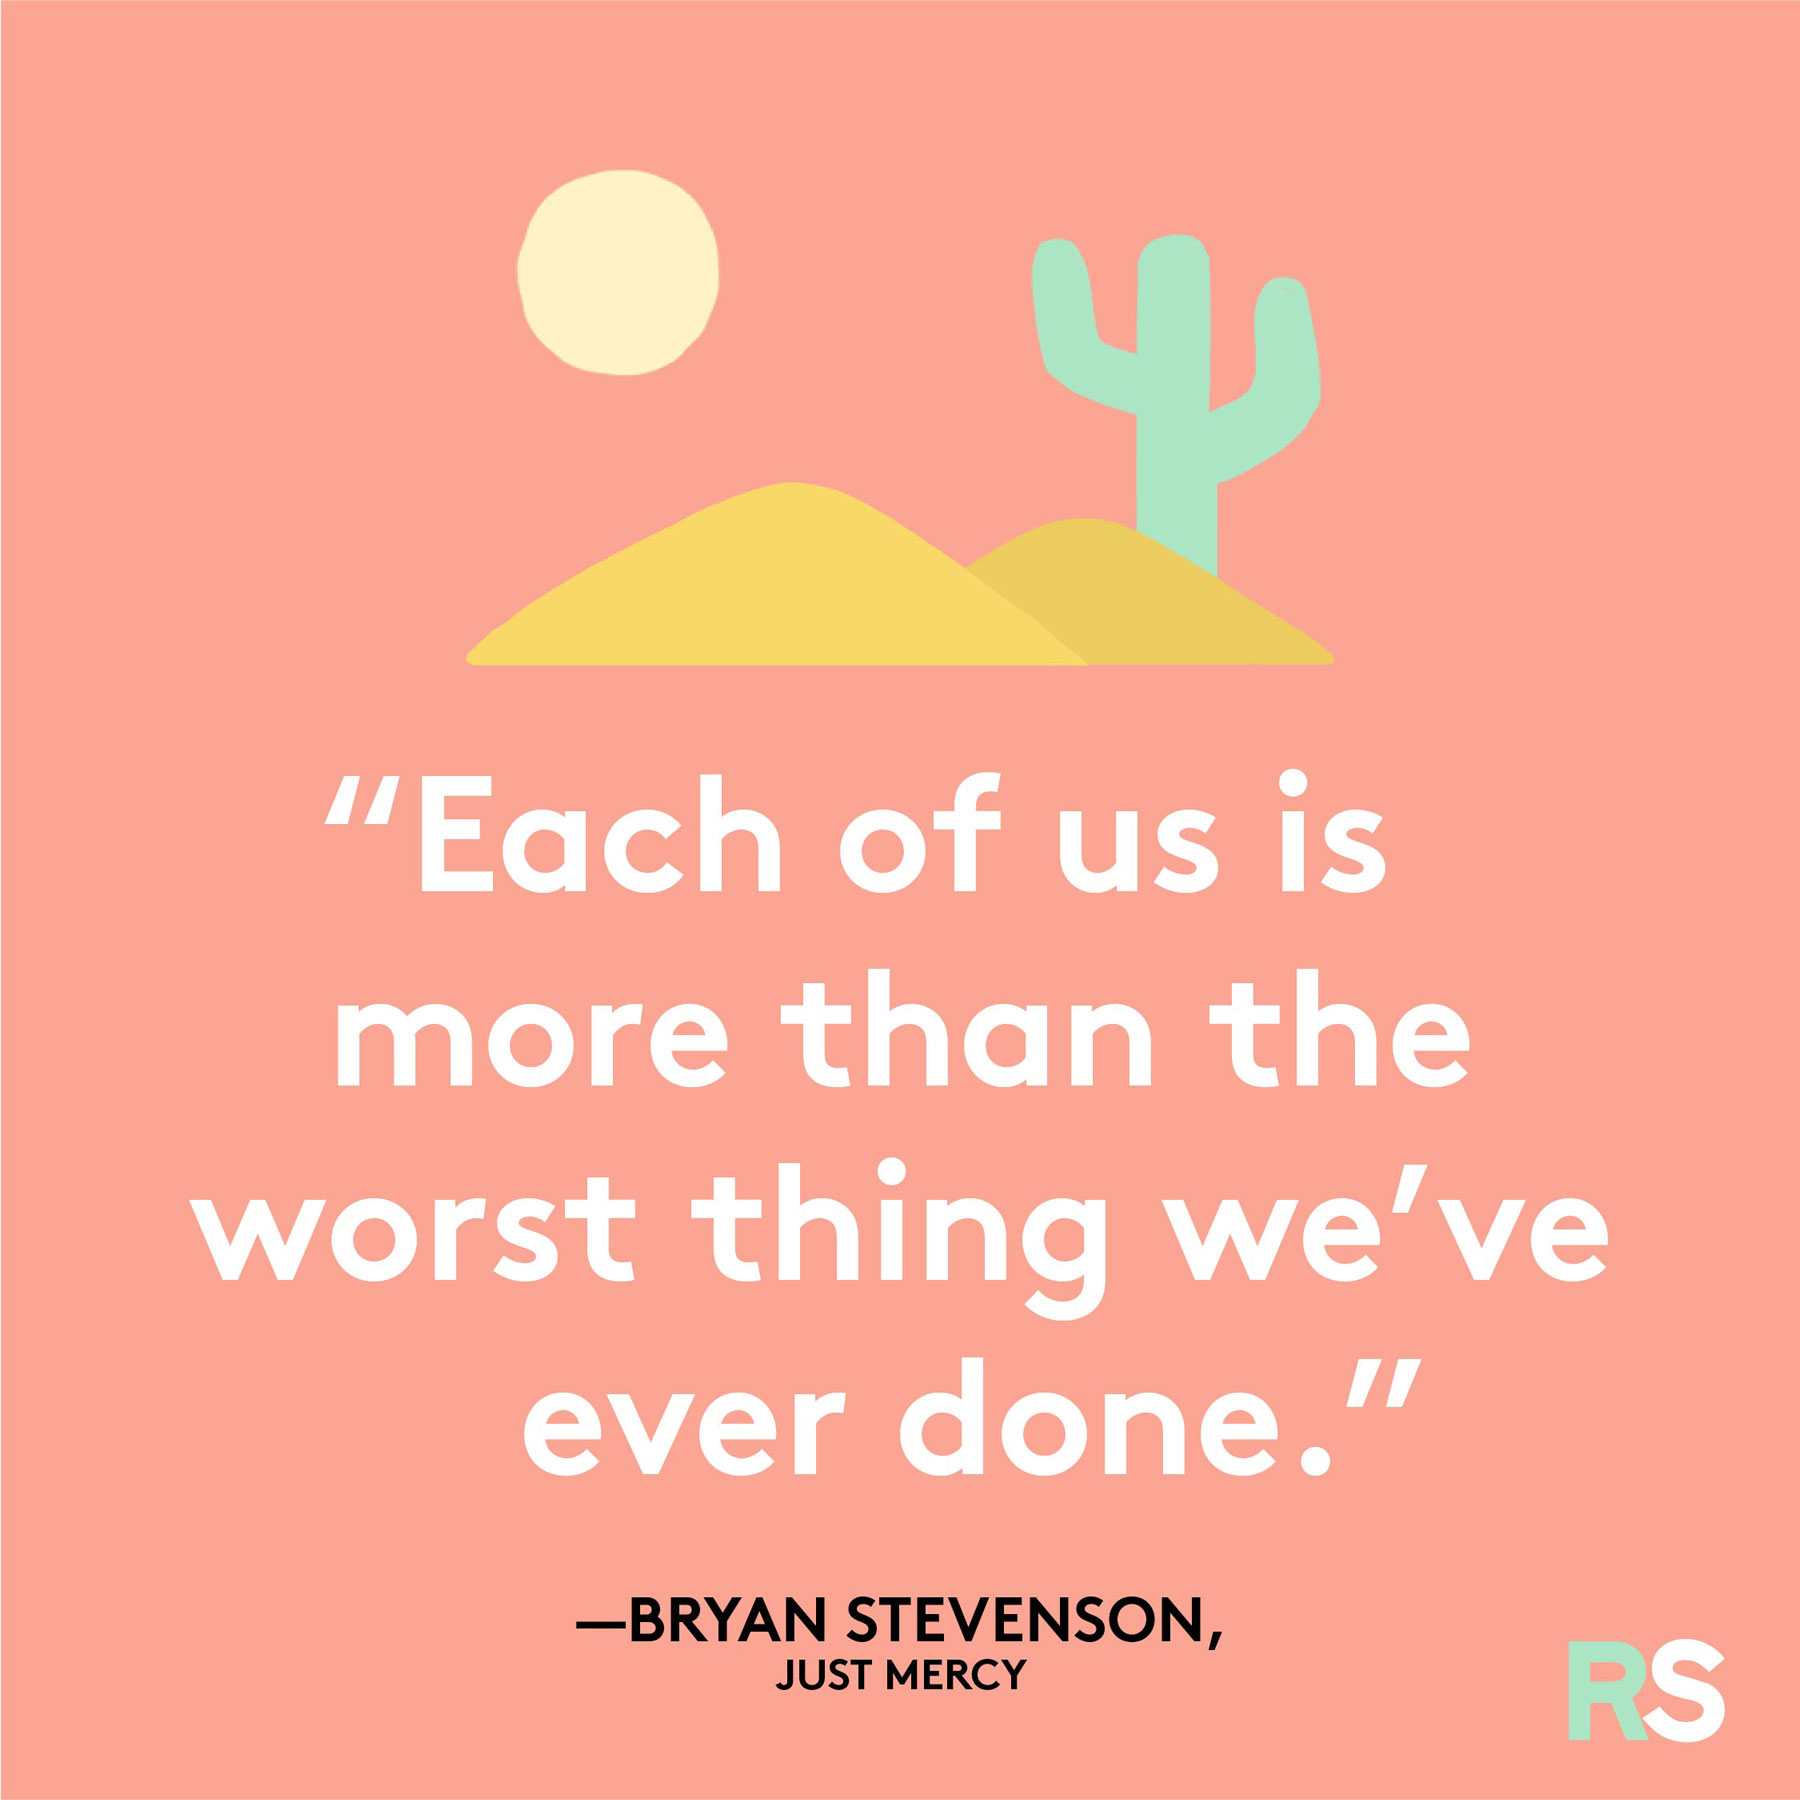 Positive motivating quotes, captions, messages – Bryan Stevenson, Just Mercy quote